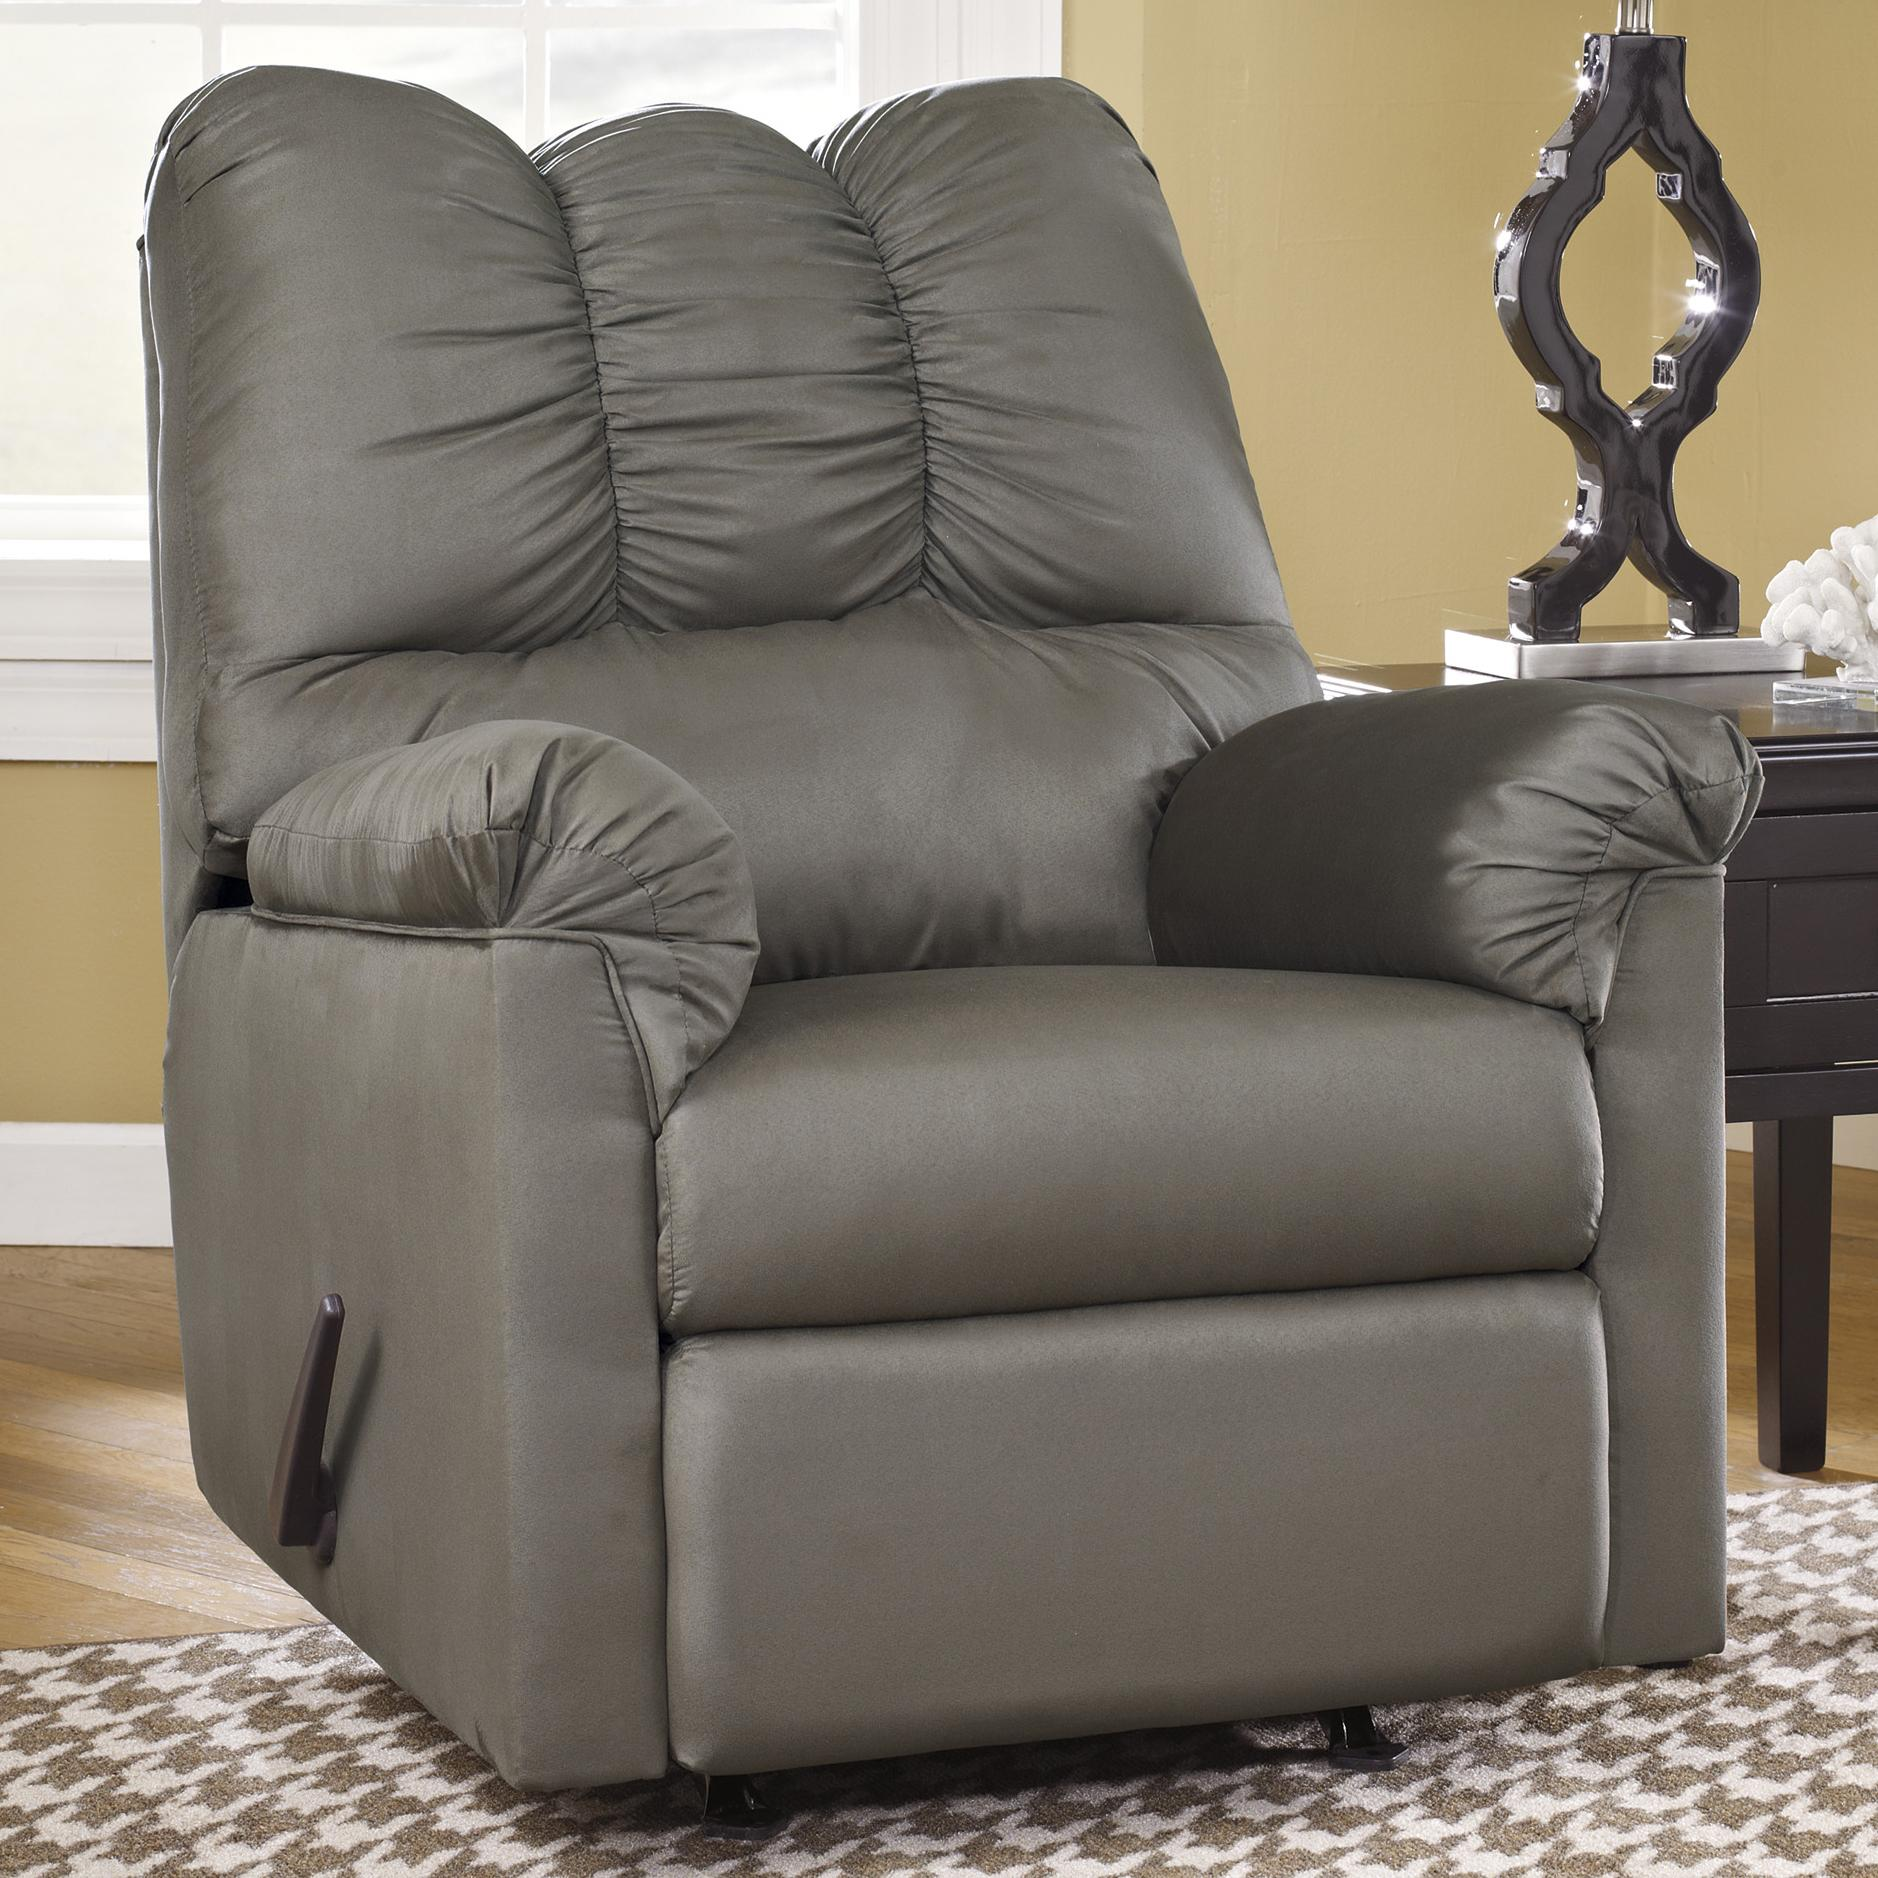 Darcy - Cobblestone Rocker Recliner by Signature Design by Ashley at Northeast Factory Direct